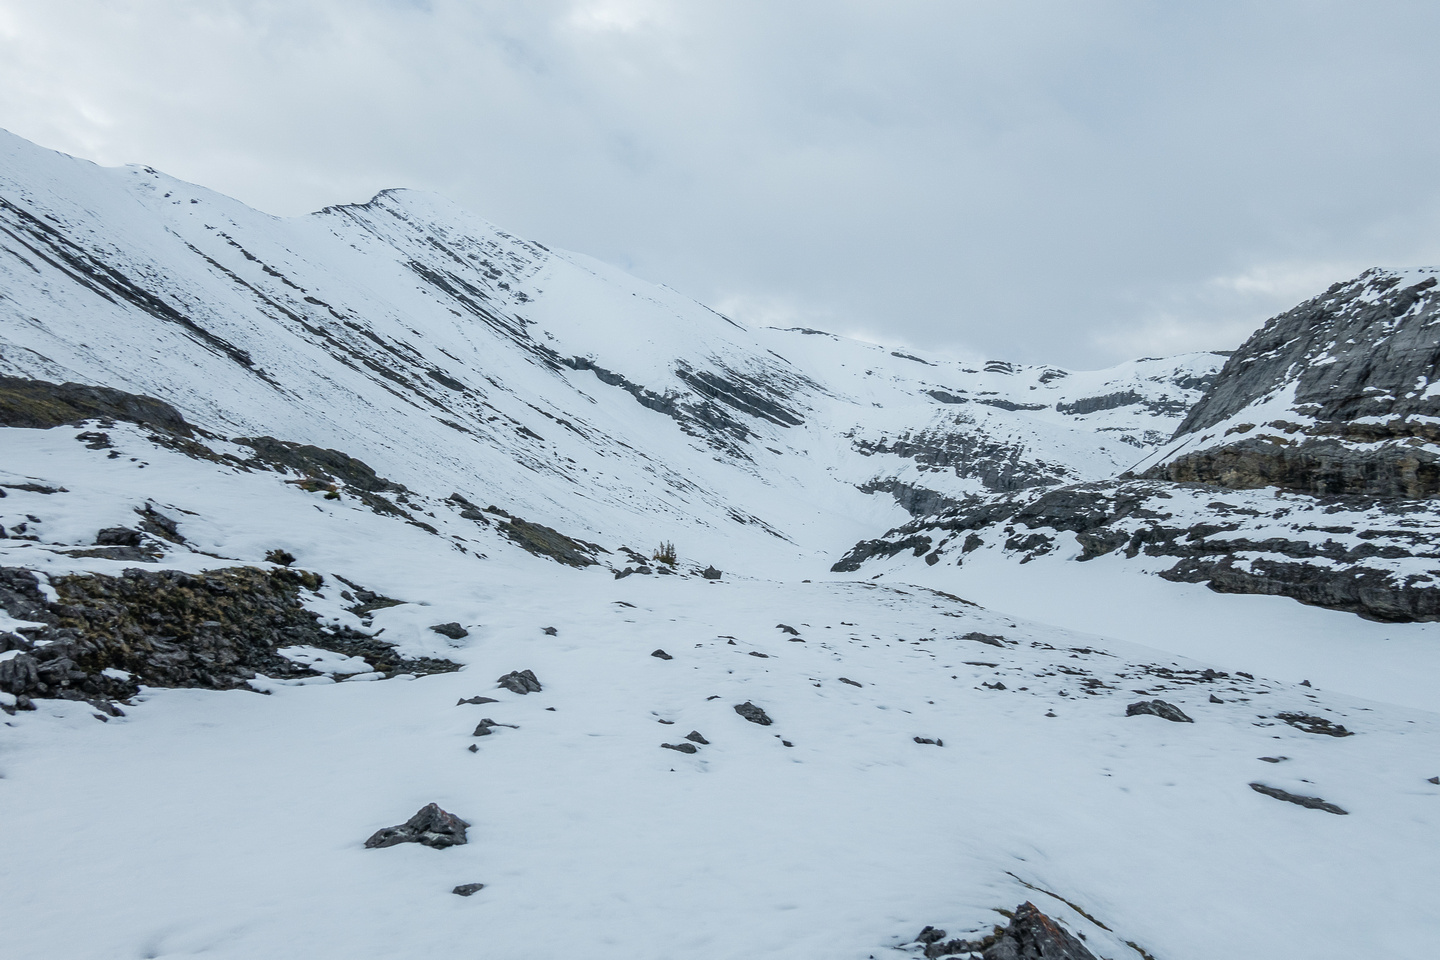 Continuing up snow and rubble to the south end of NW valley.